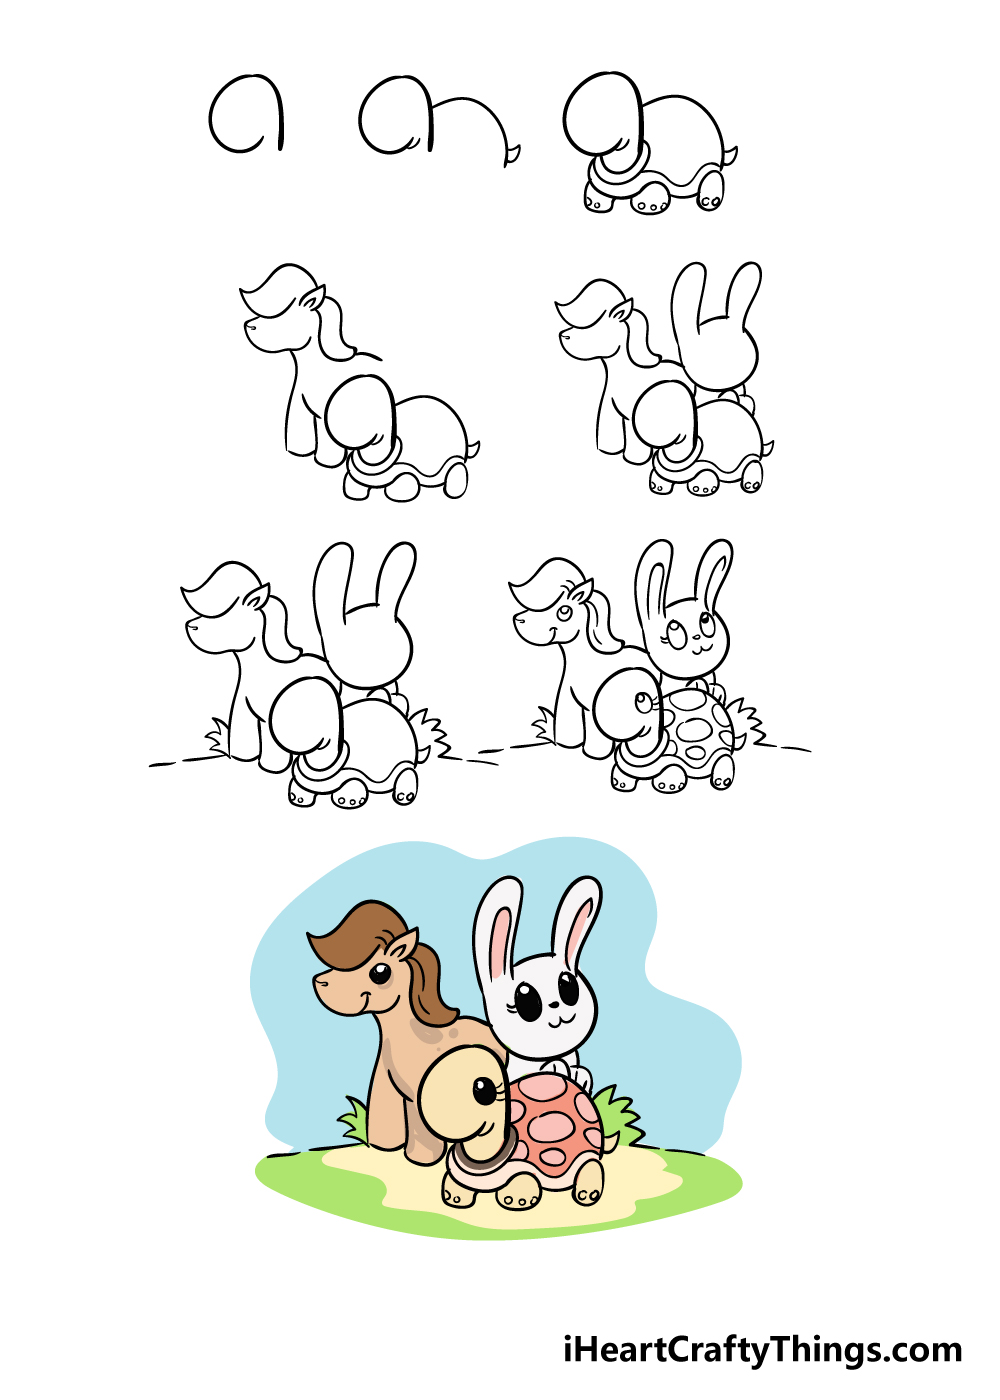 how to draw cute animals in 8 steps